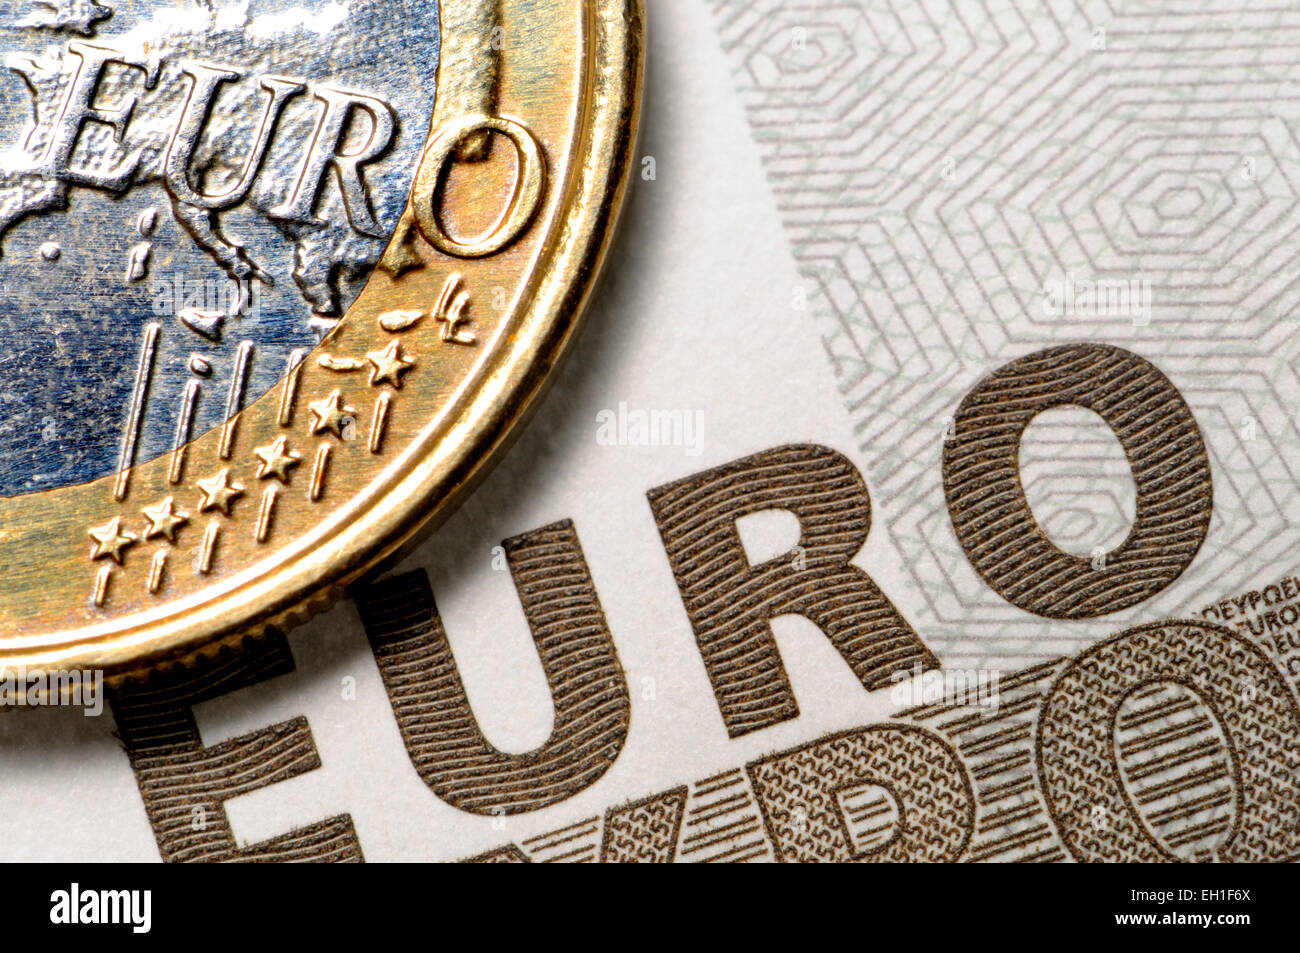 Euro coin and €5 note - Stock Image